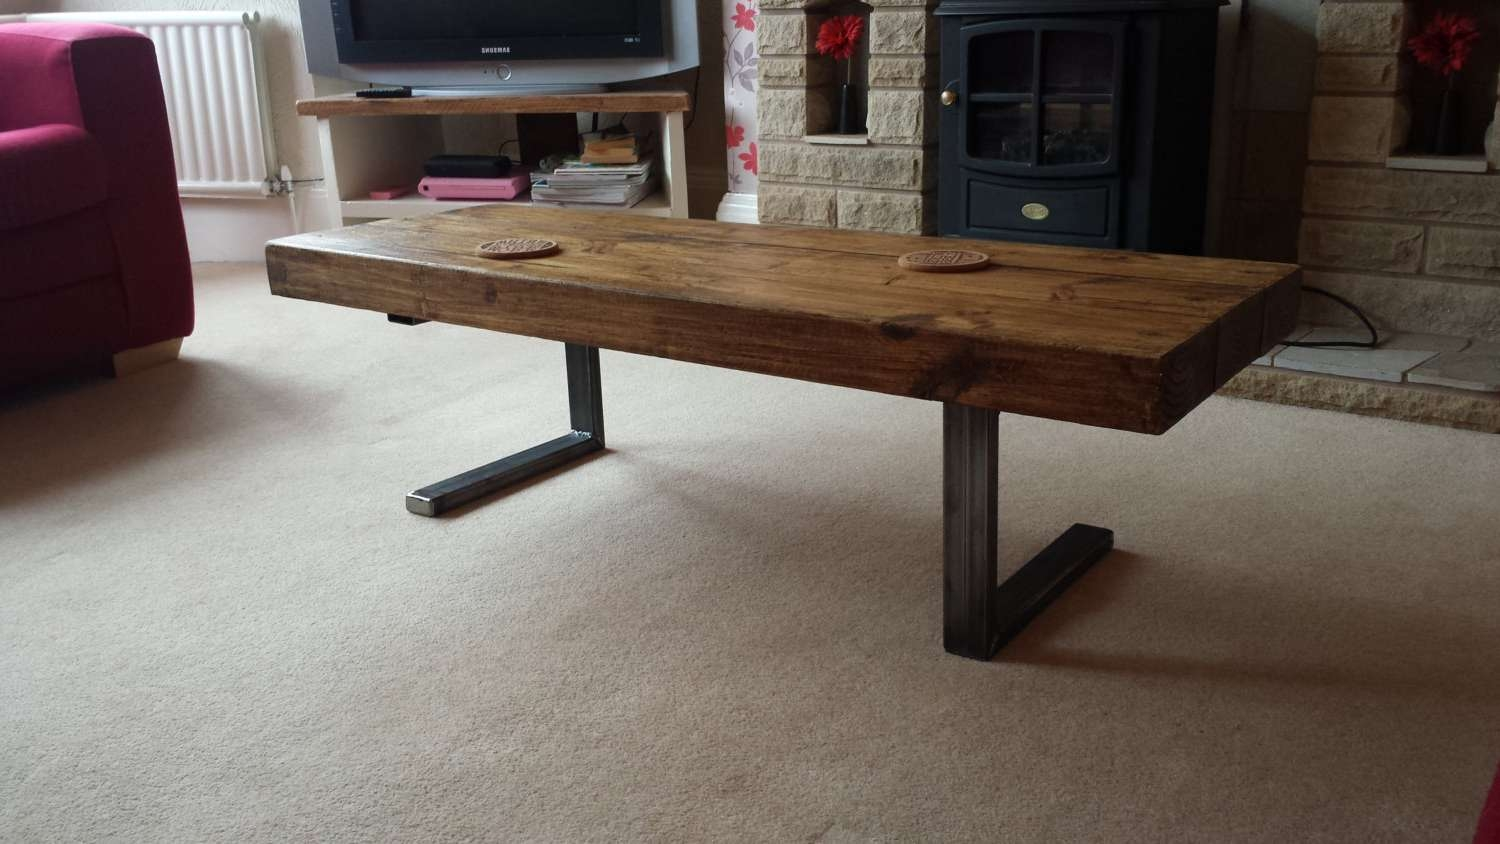 Well Liked Chunky Coffee Tables Inside Coffee Table In Chunky Rustic Design With Steel L Shaped Legs (View 9 of 20)